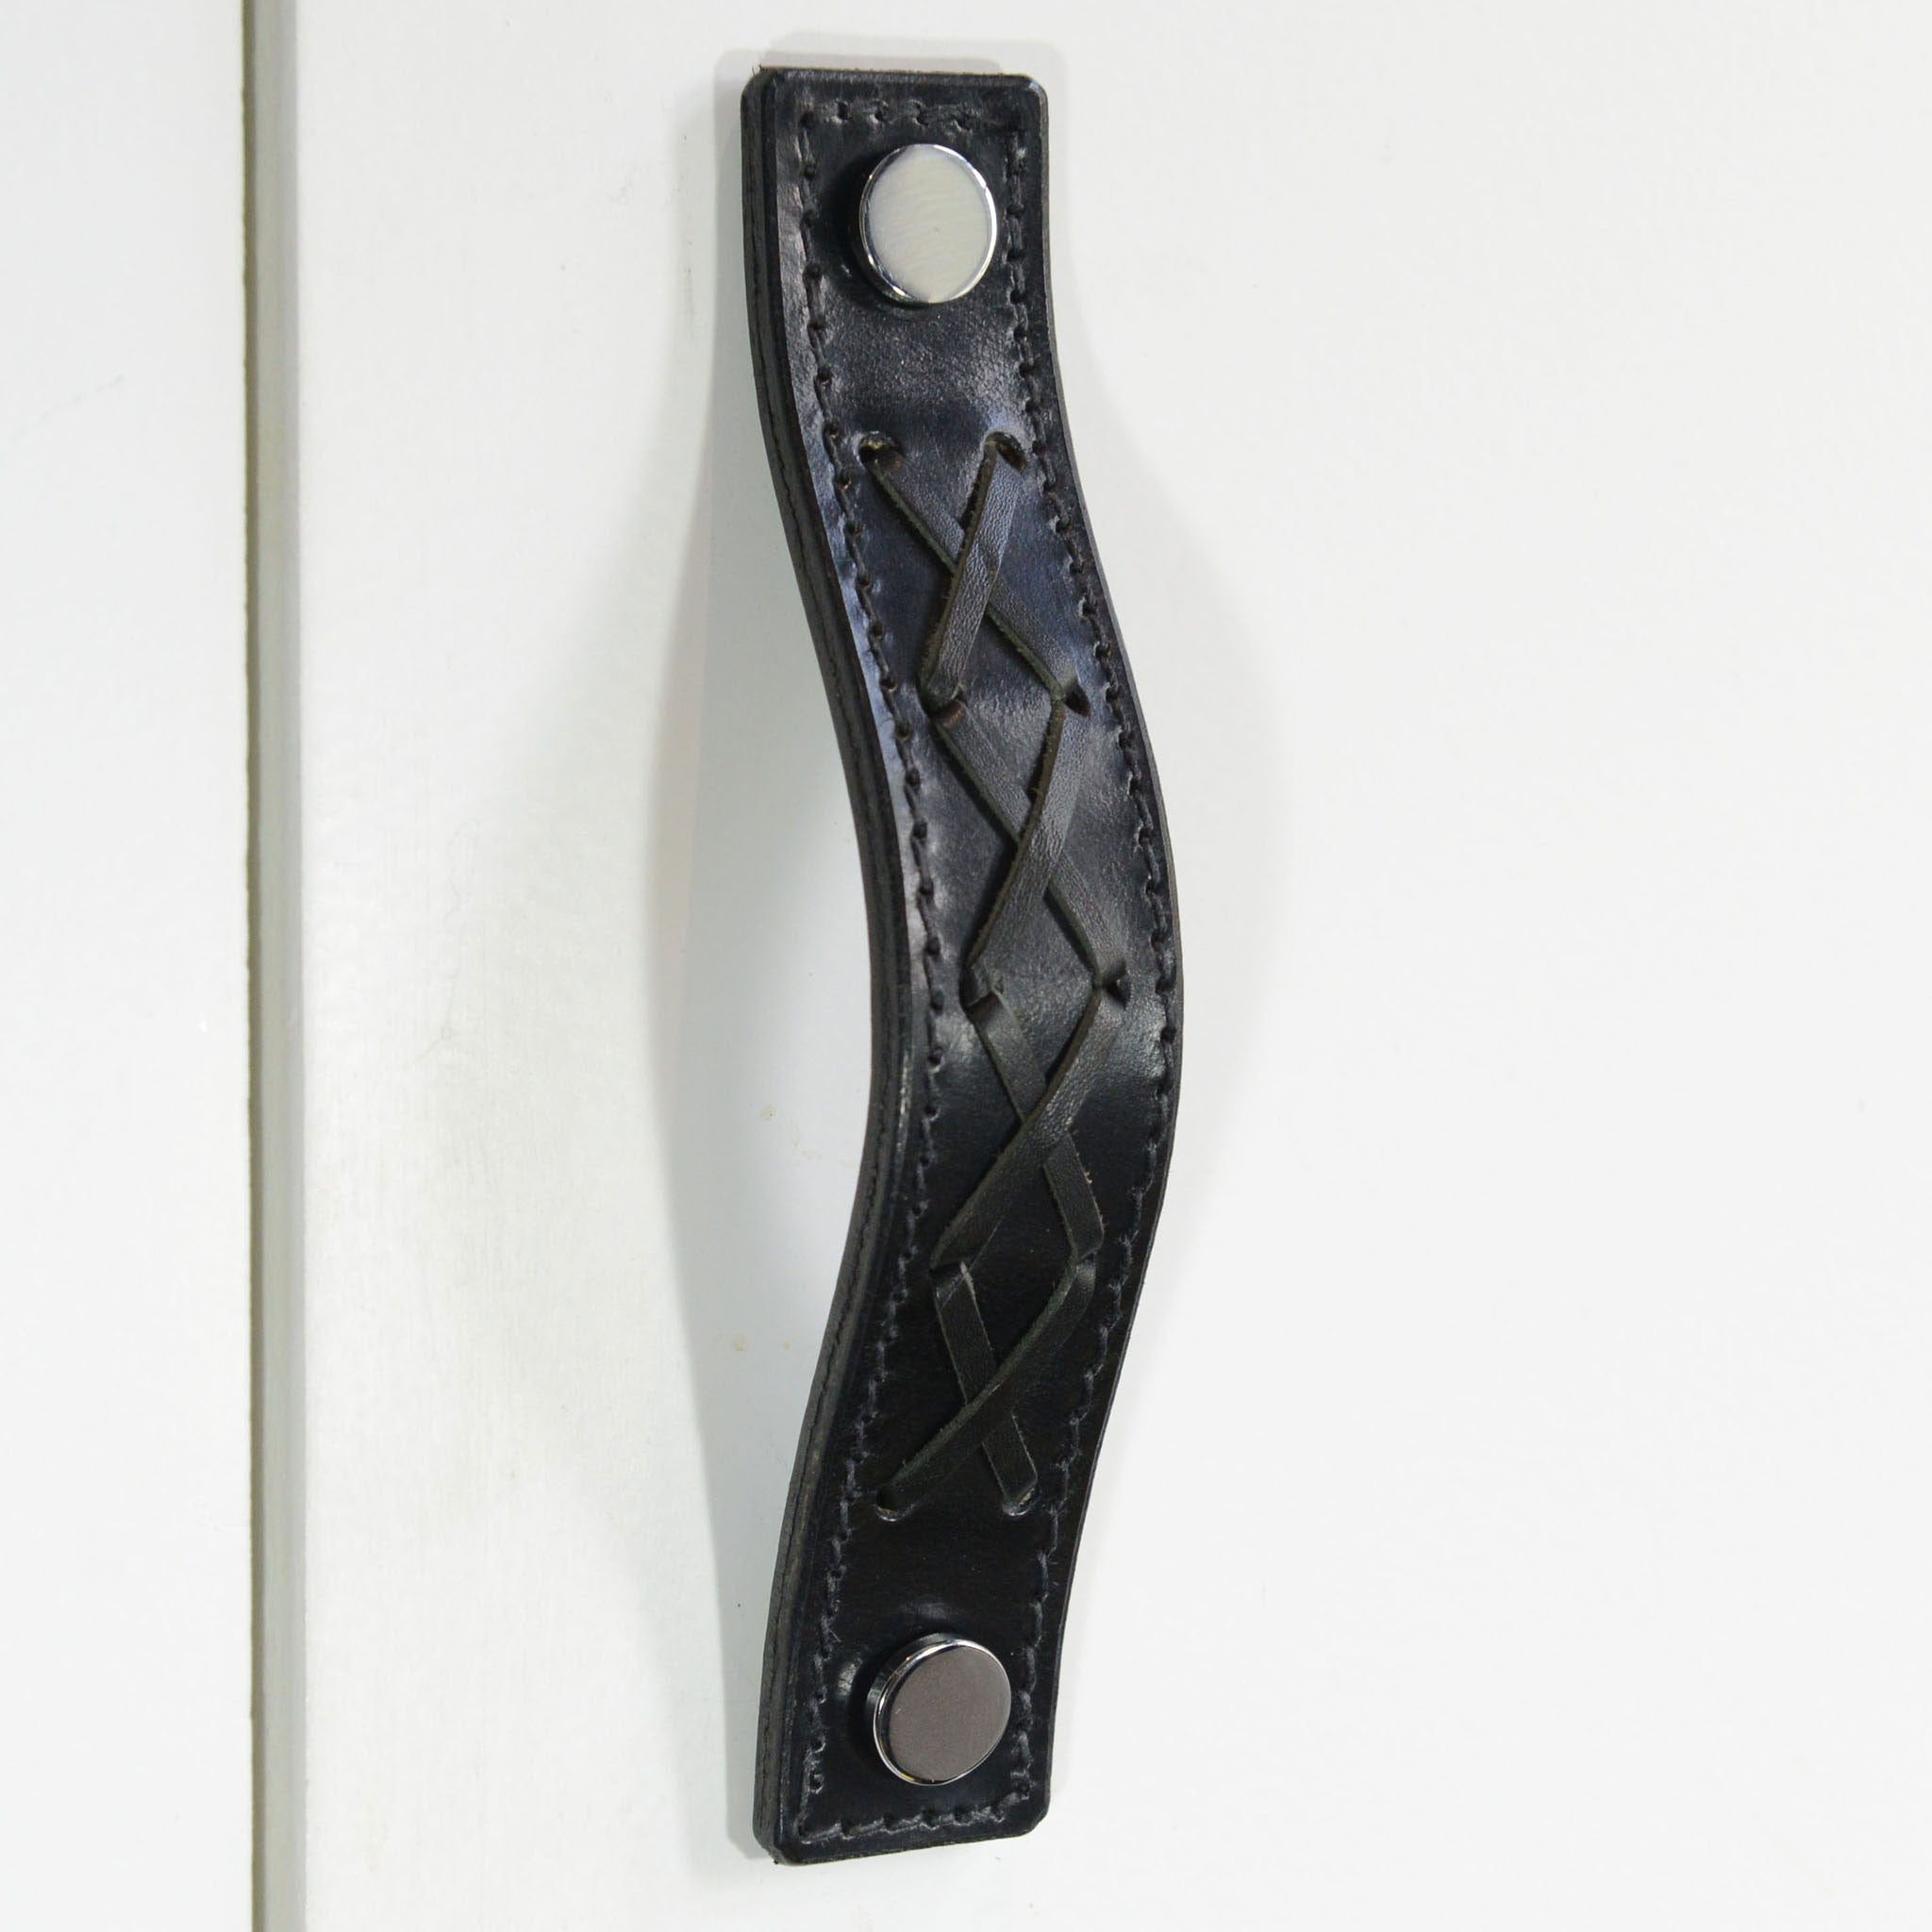 Texon Woven Black Leather Door Pull with Polished Chrome fixings